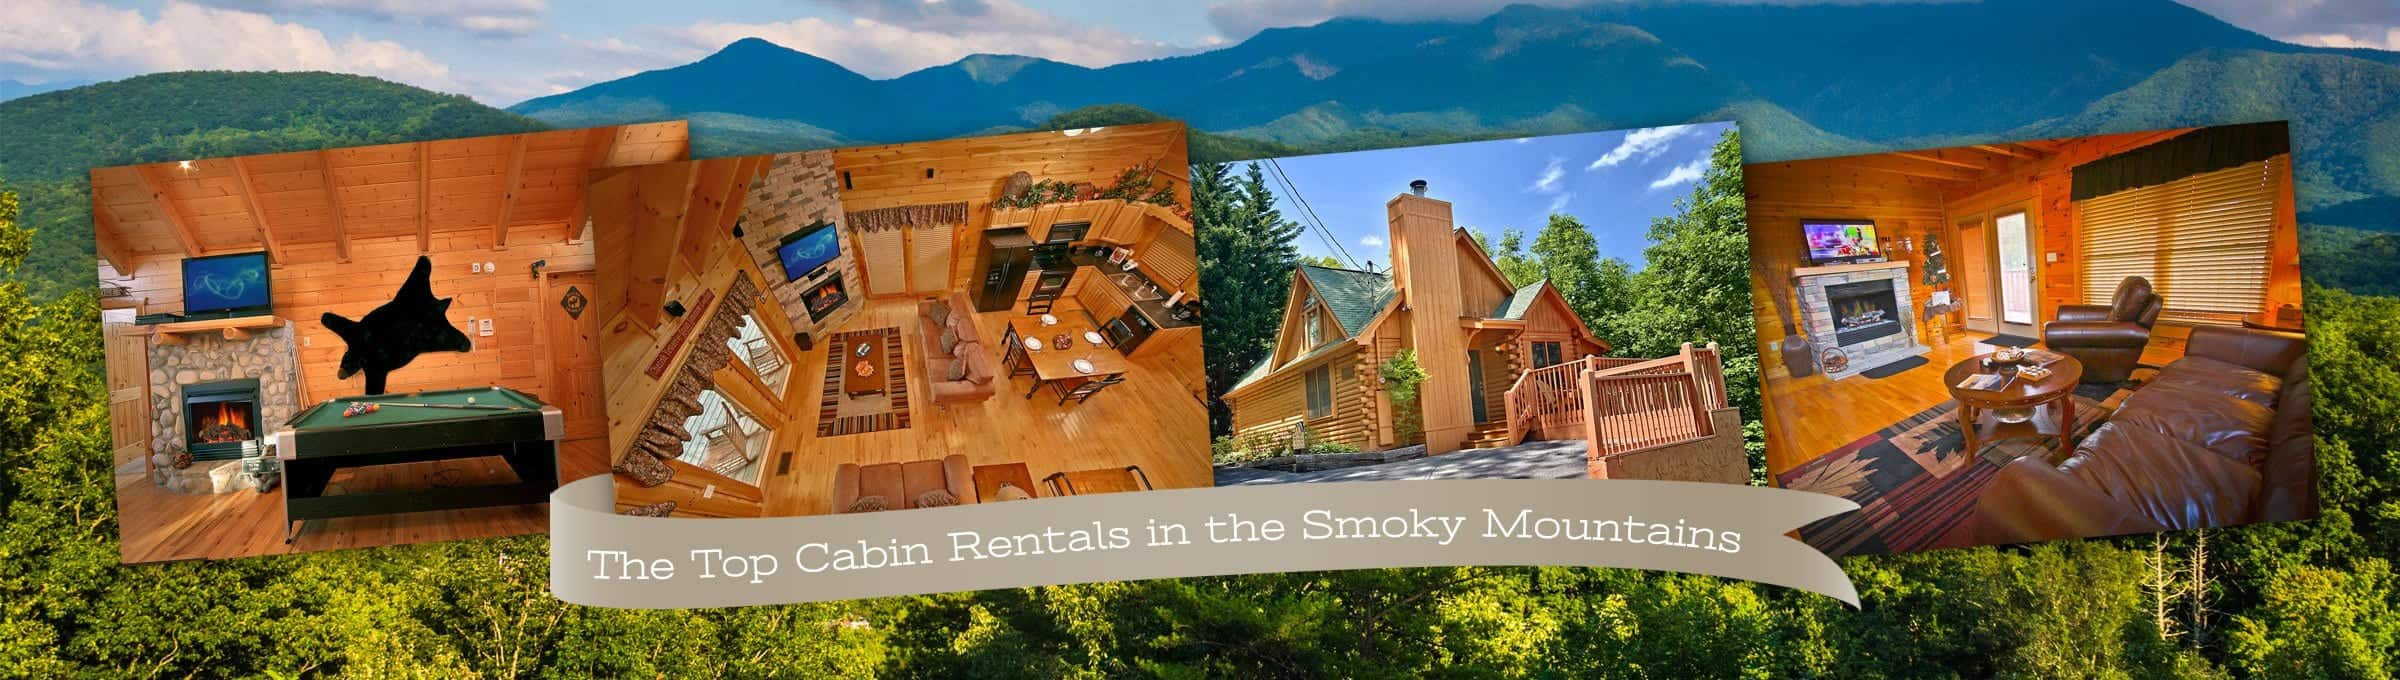 smoky guide ext manor your view cabins dream rentals to in the mountains cabin mountain